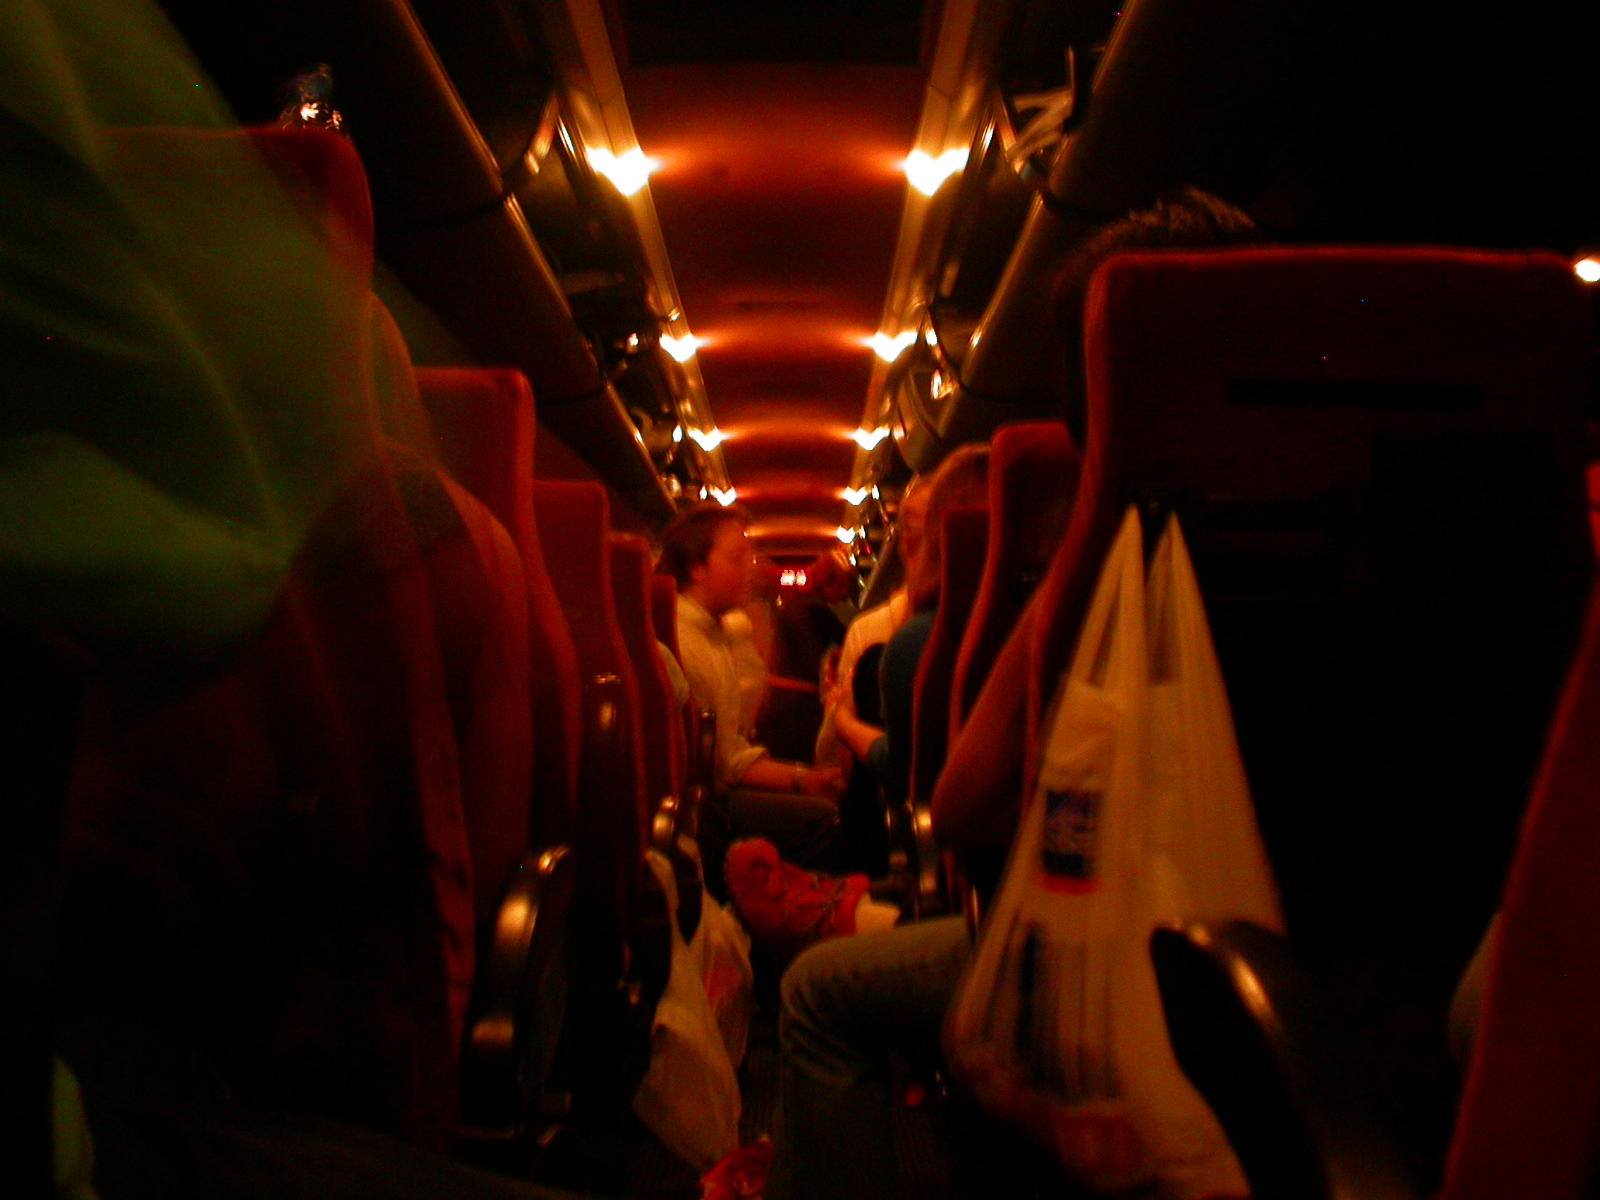 eva bus seats travling red dark lights passengers